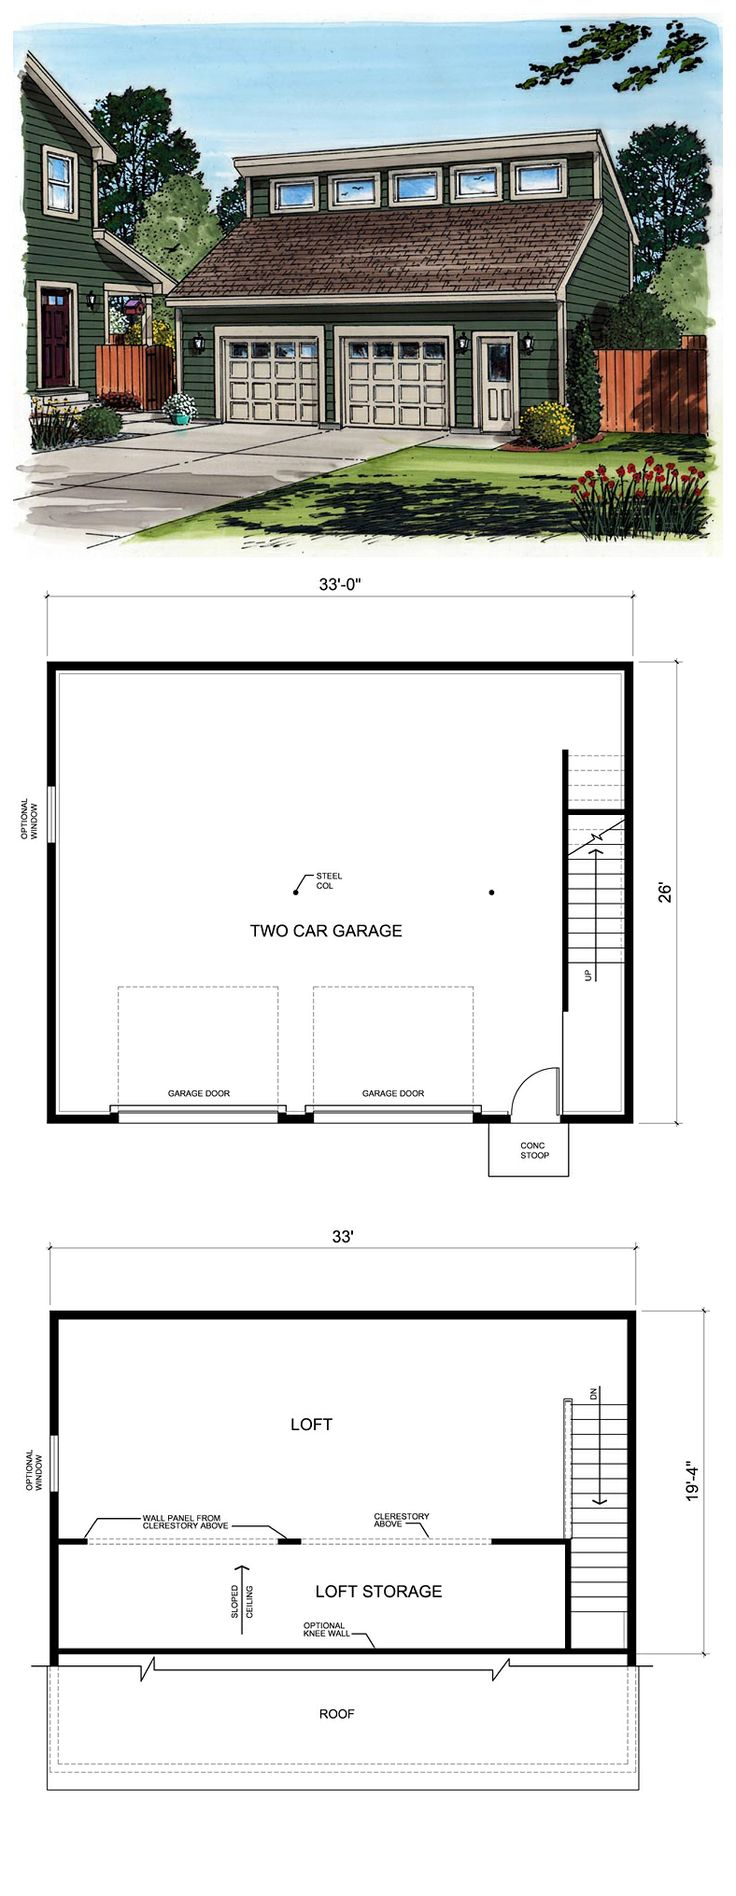 27 best two car garage plans images on pinterest garage plans contemporary garage plan 30011